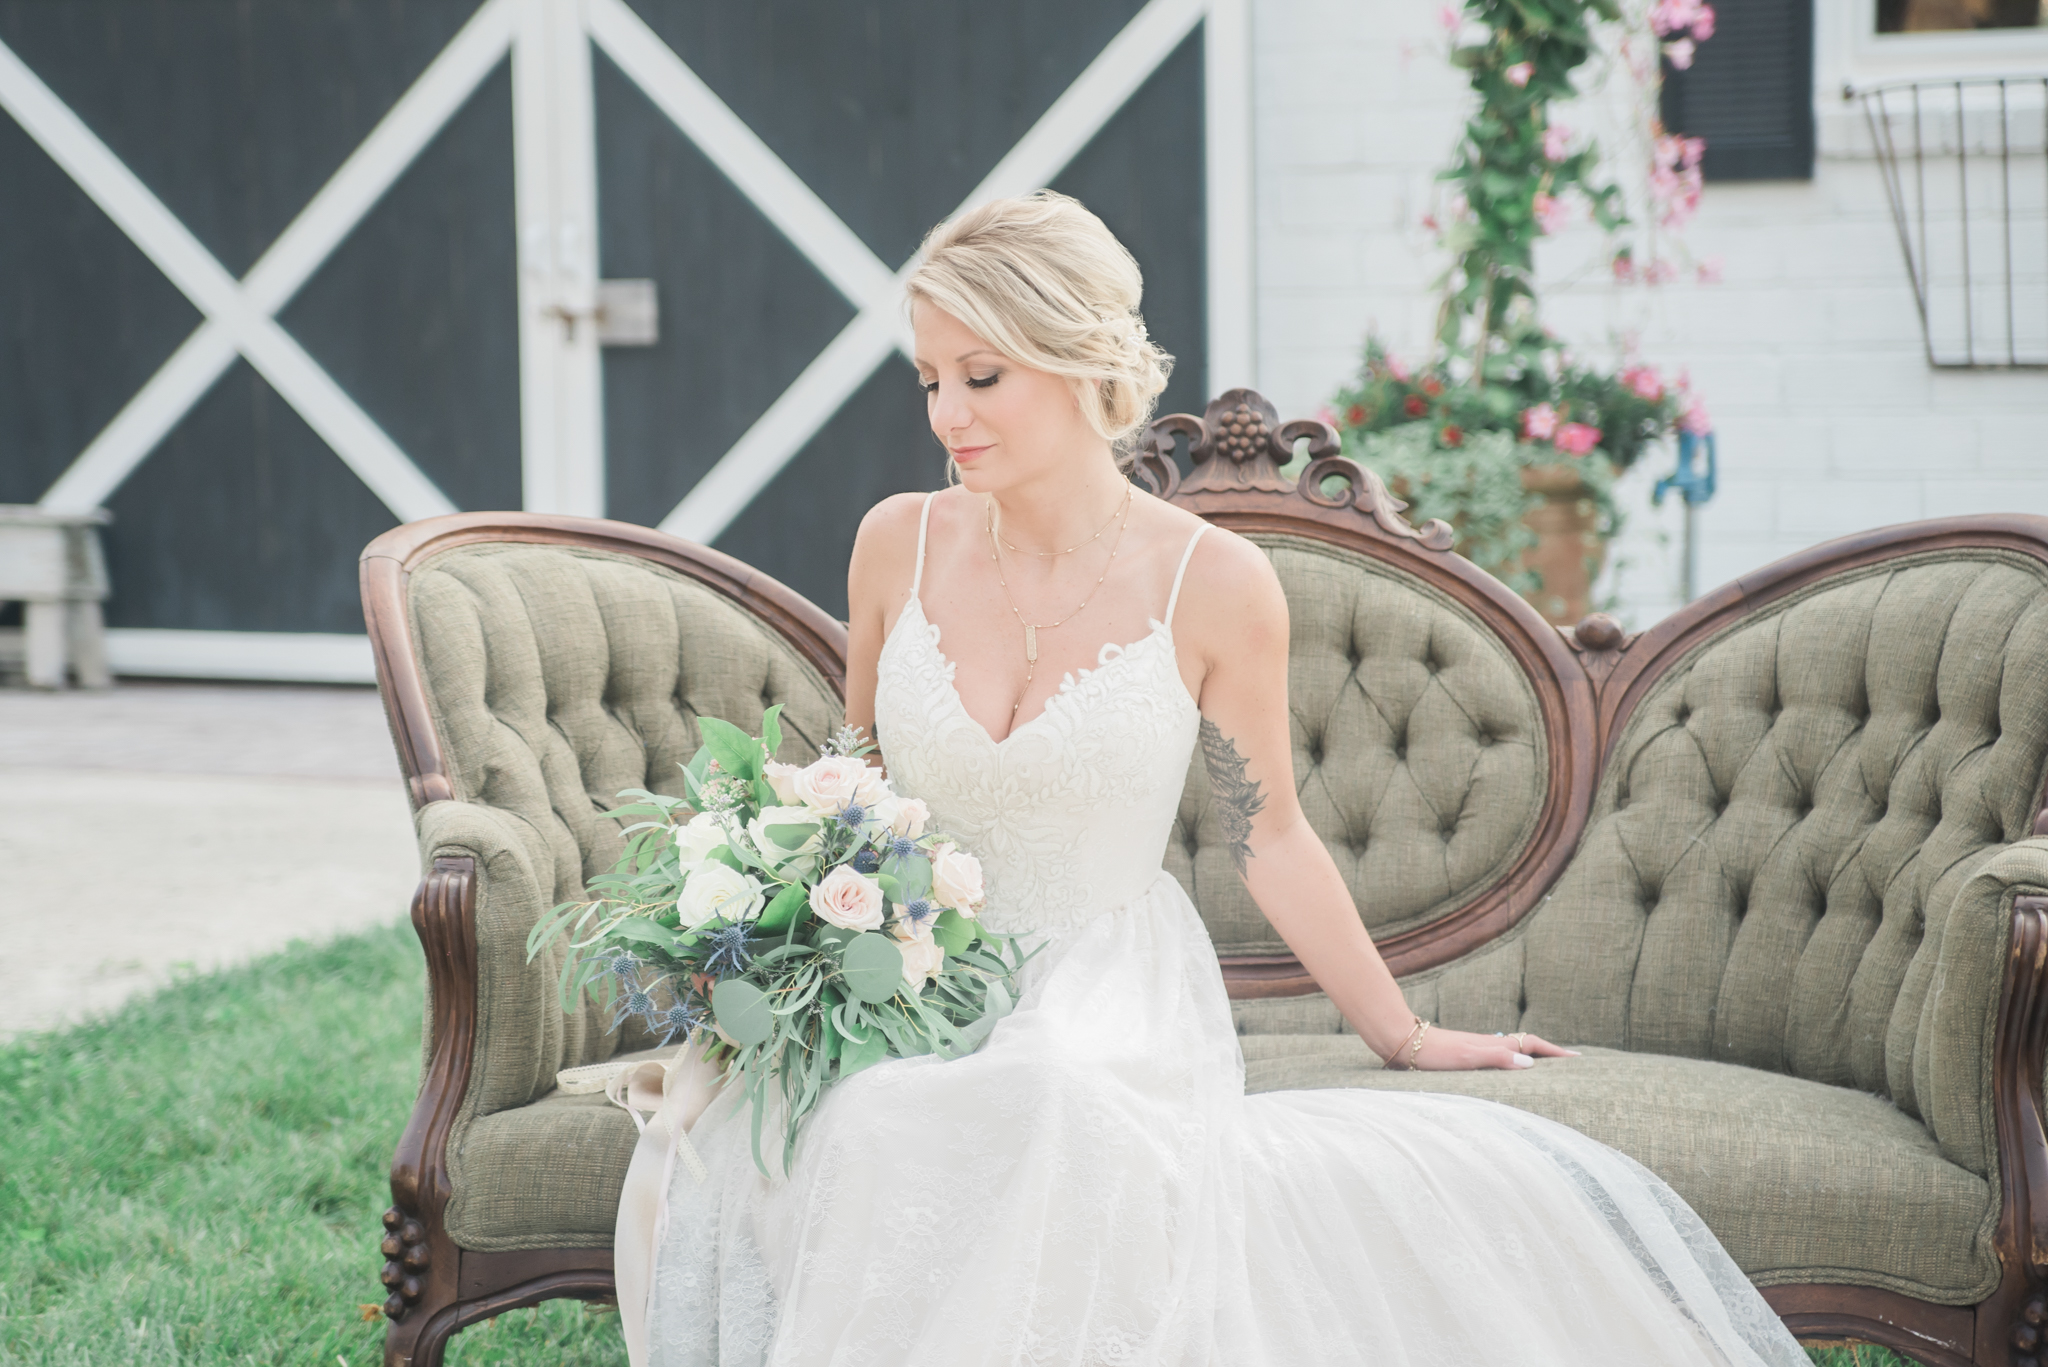 Our lovely model, Nicole Oidman, poses with her bouquet created by Diana Fox at Allen's Flowers.